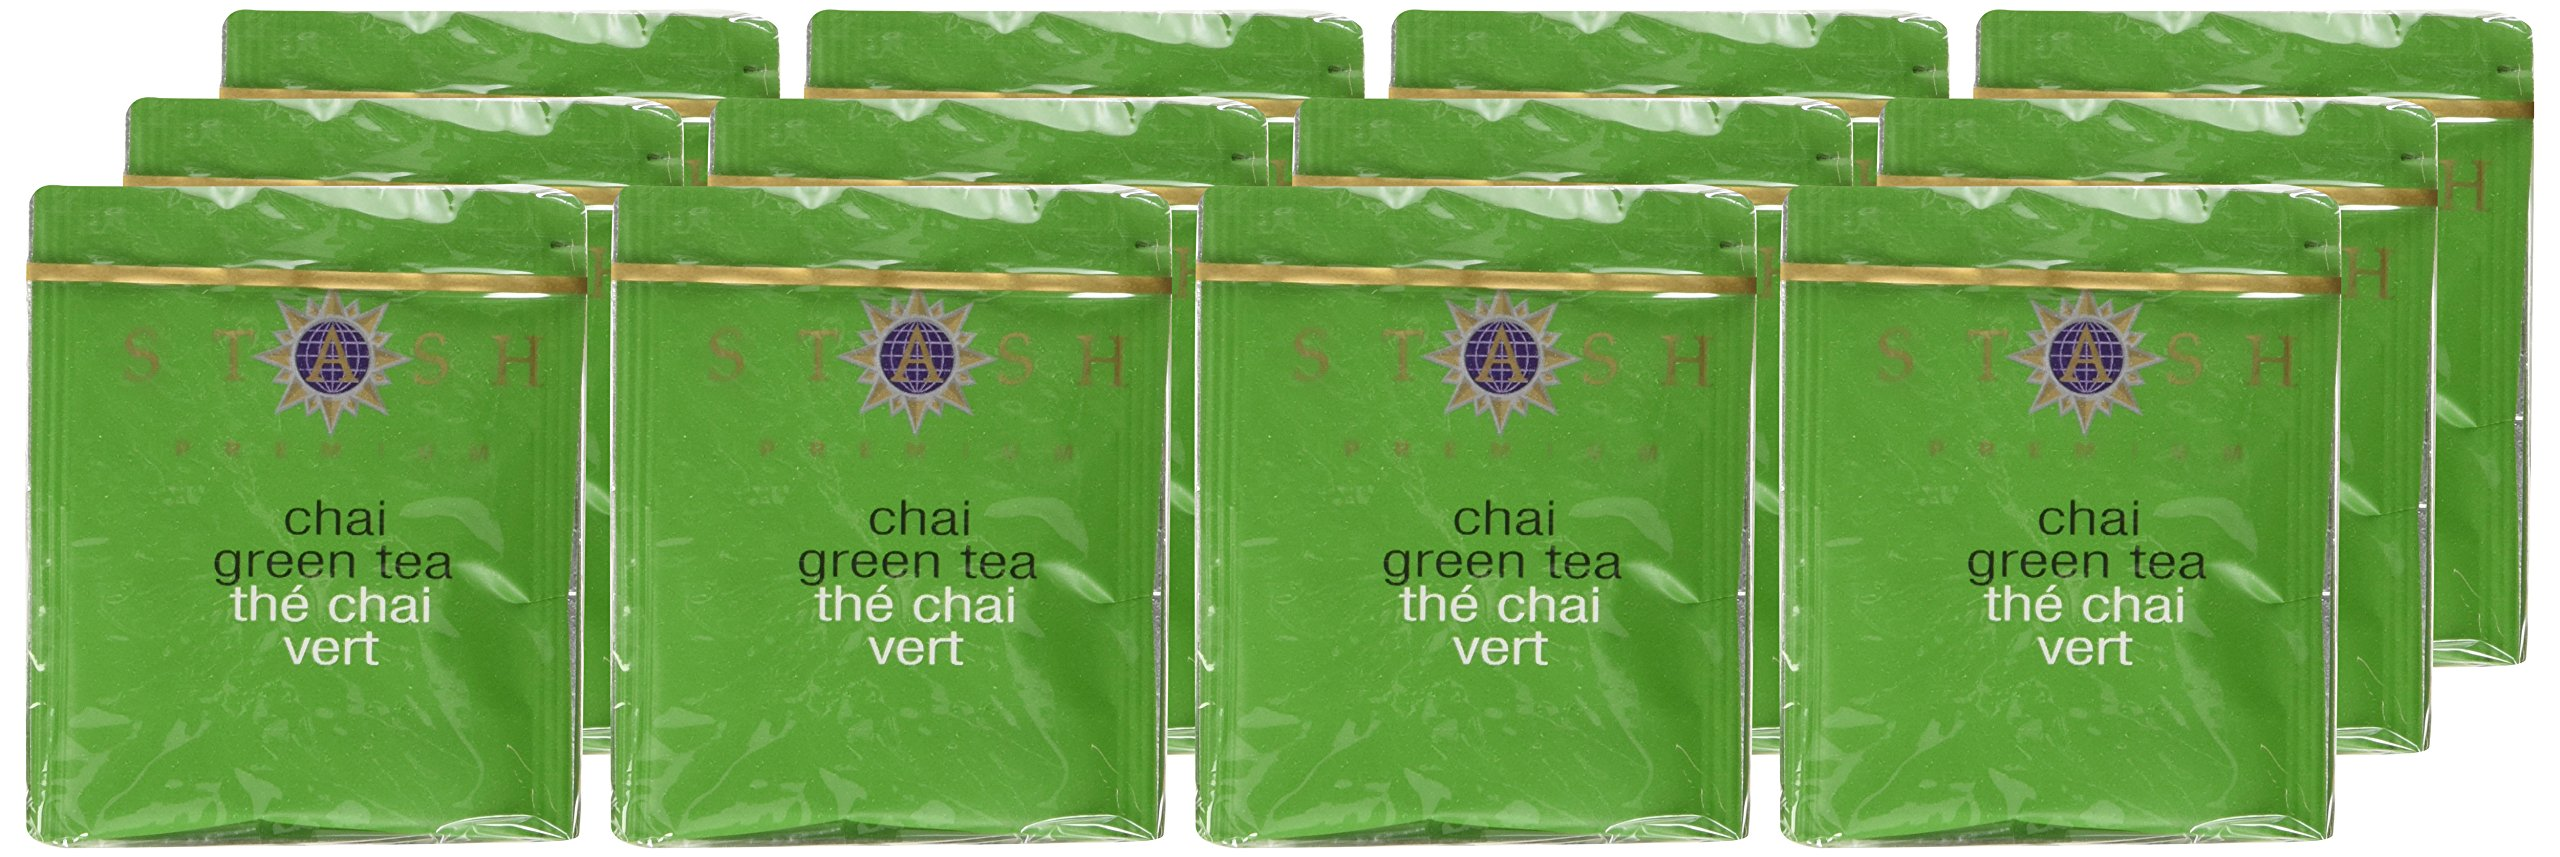 Stash Tea Green Chai Tea 10 Count Tea Bags in Foil (Pack of 12) (packaging may vary) Individual Spiced Green Tea Bags for Use in Teapots Mugs or Teacups, Brew Hot Tea or Iced Tea by Stash Tea (Image #2)